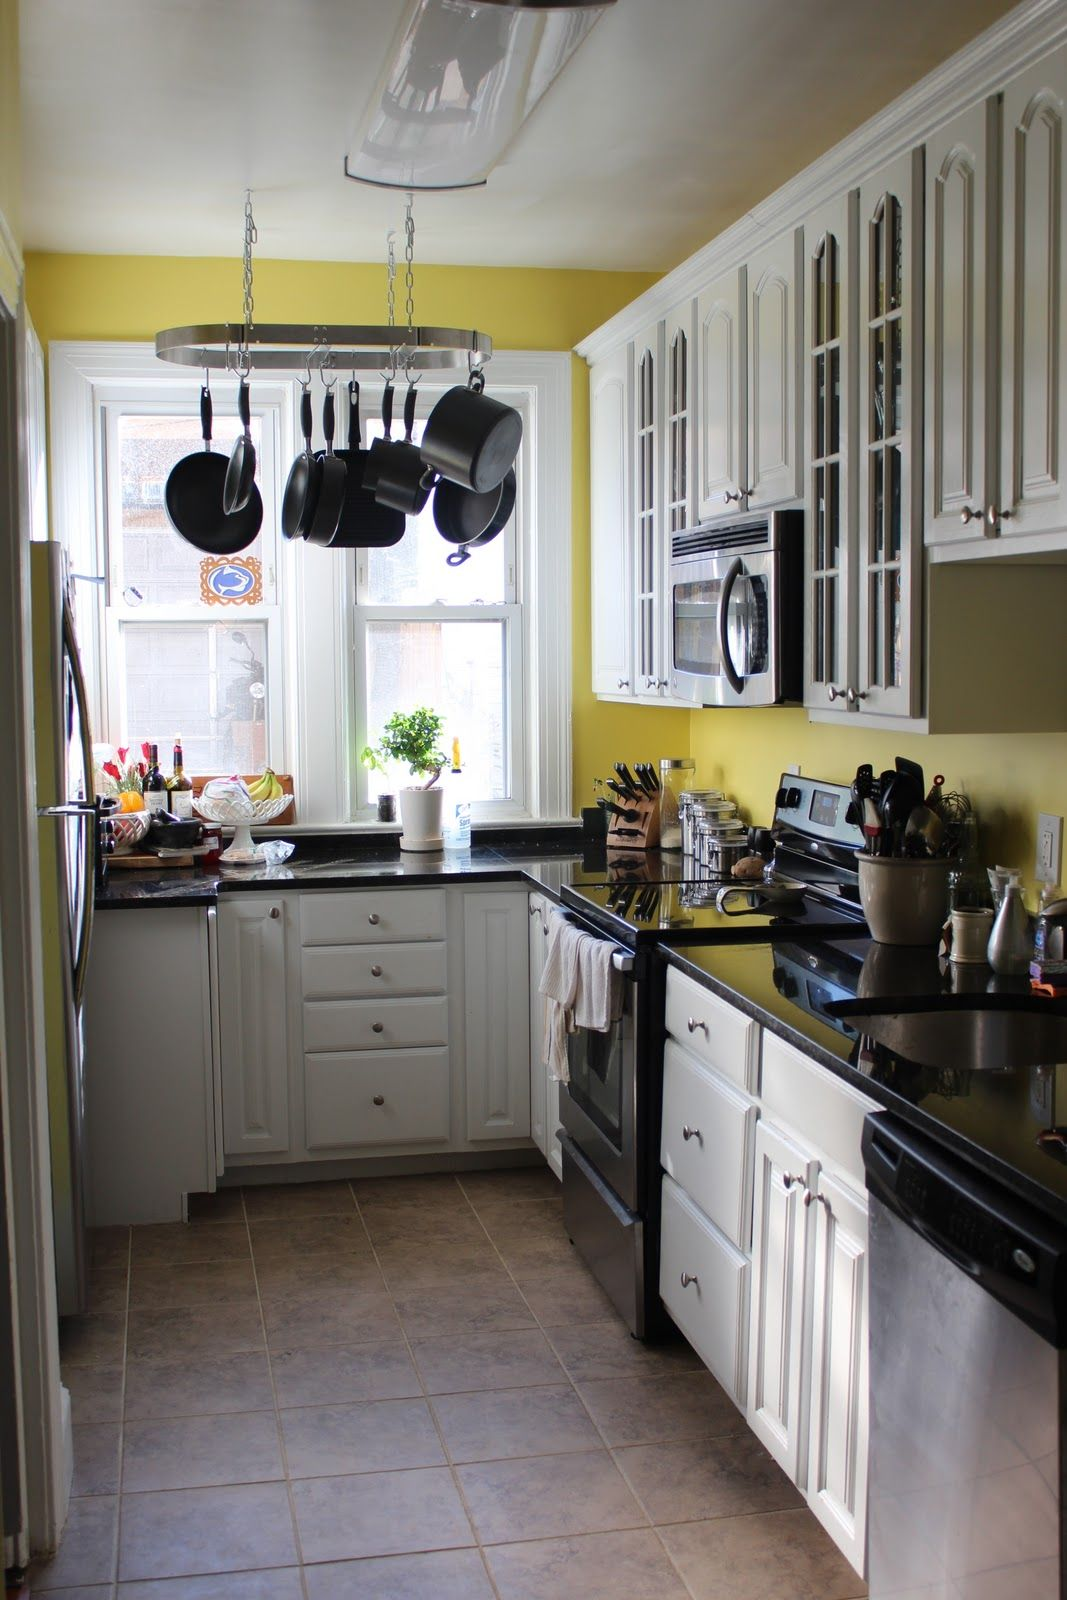 pinning this to show me i will not like this yellow kitchen for me kitchen pinterest on kitchen ideas yellow and grey id=75375